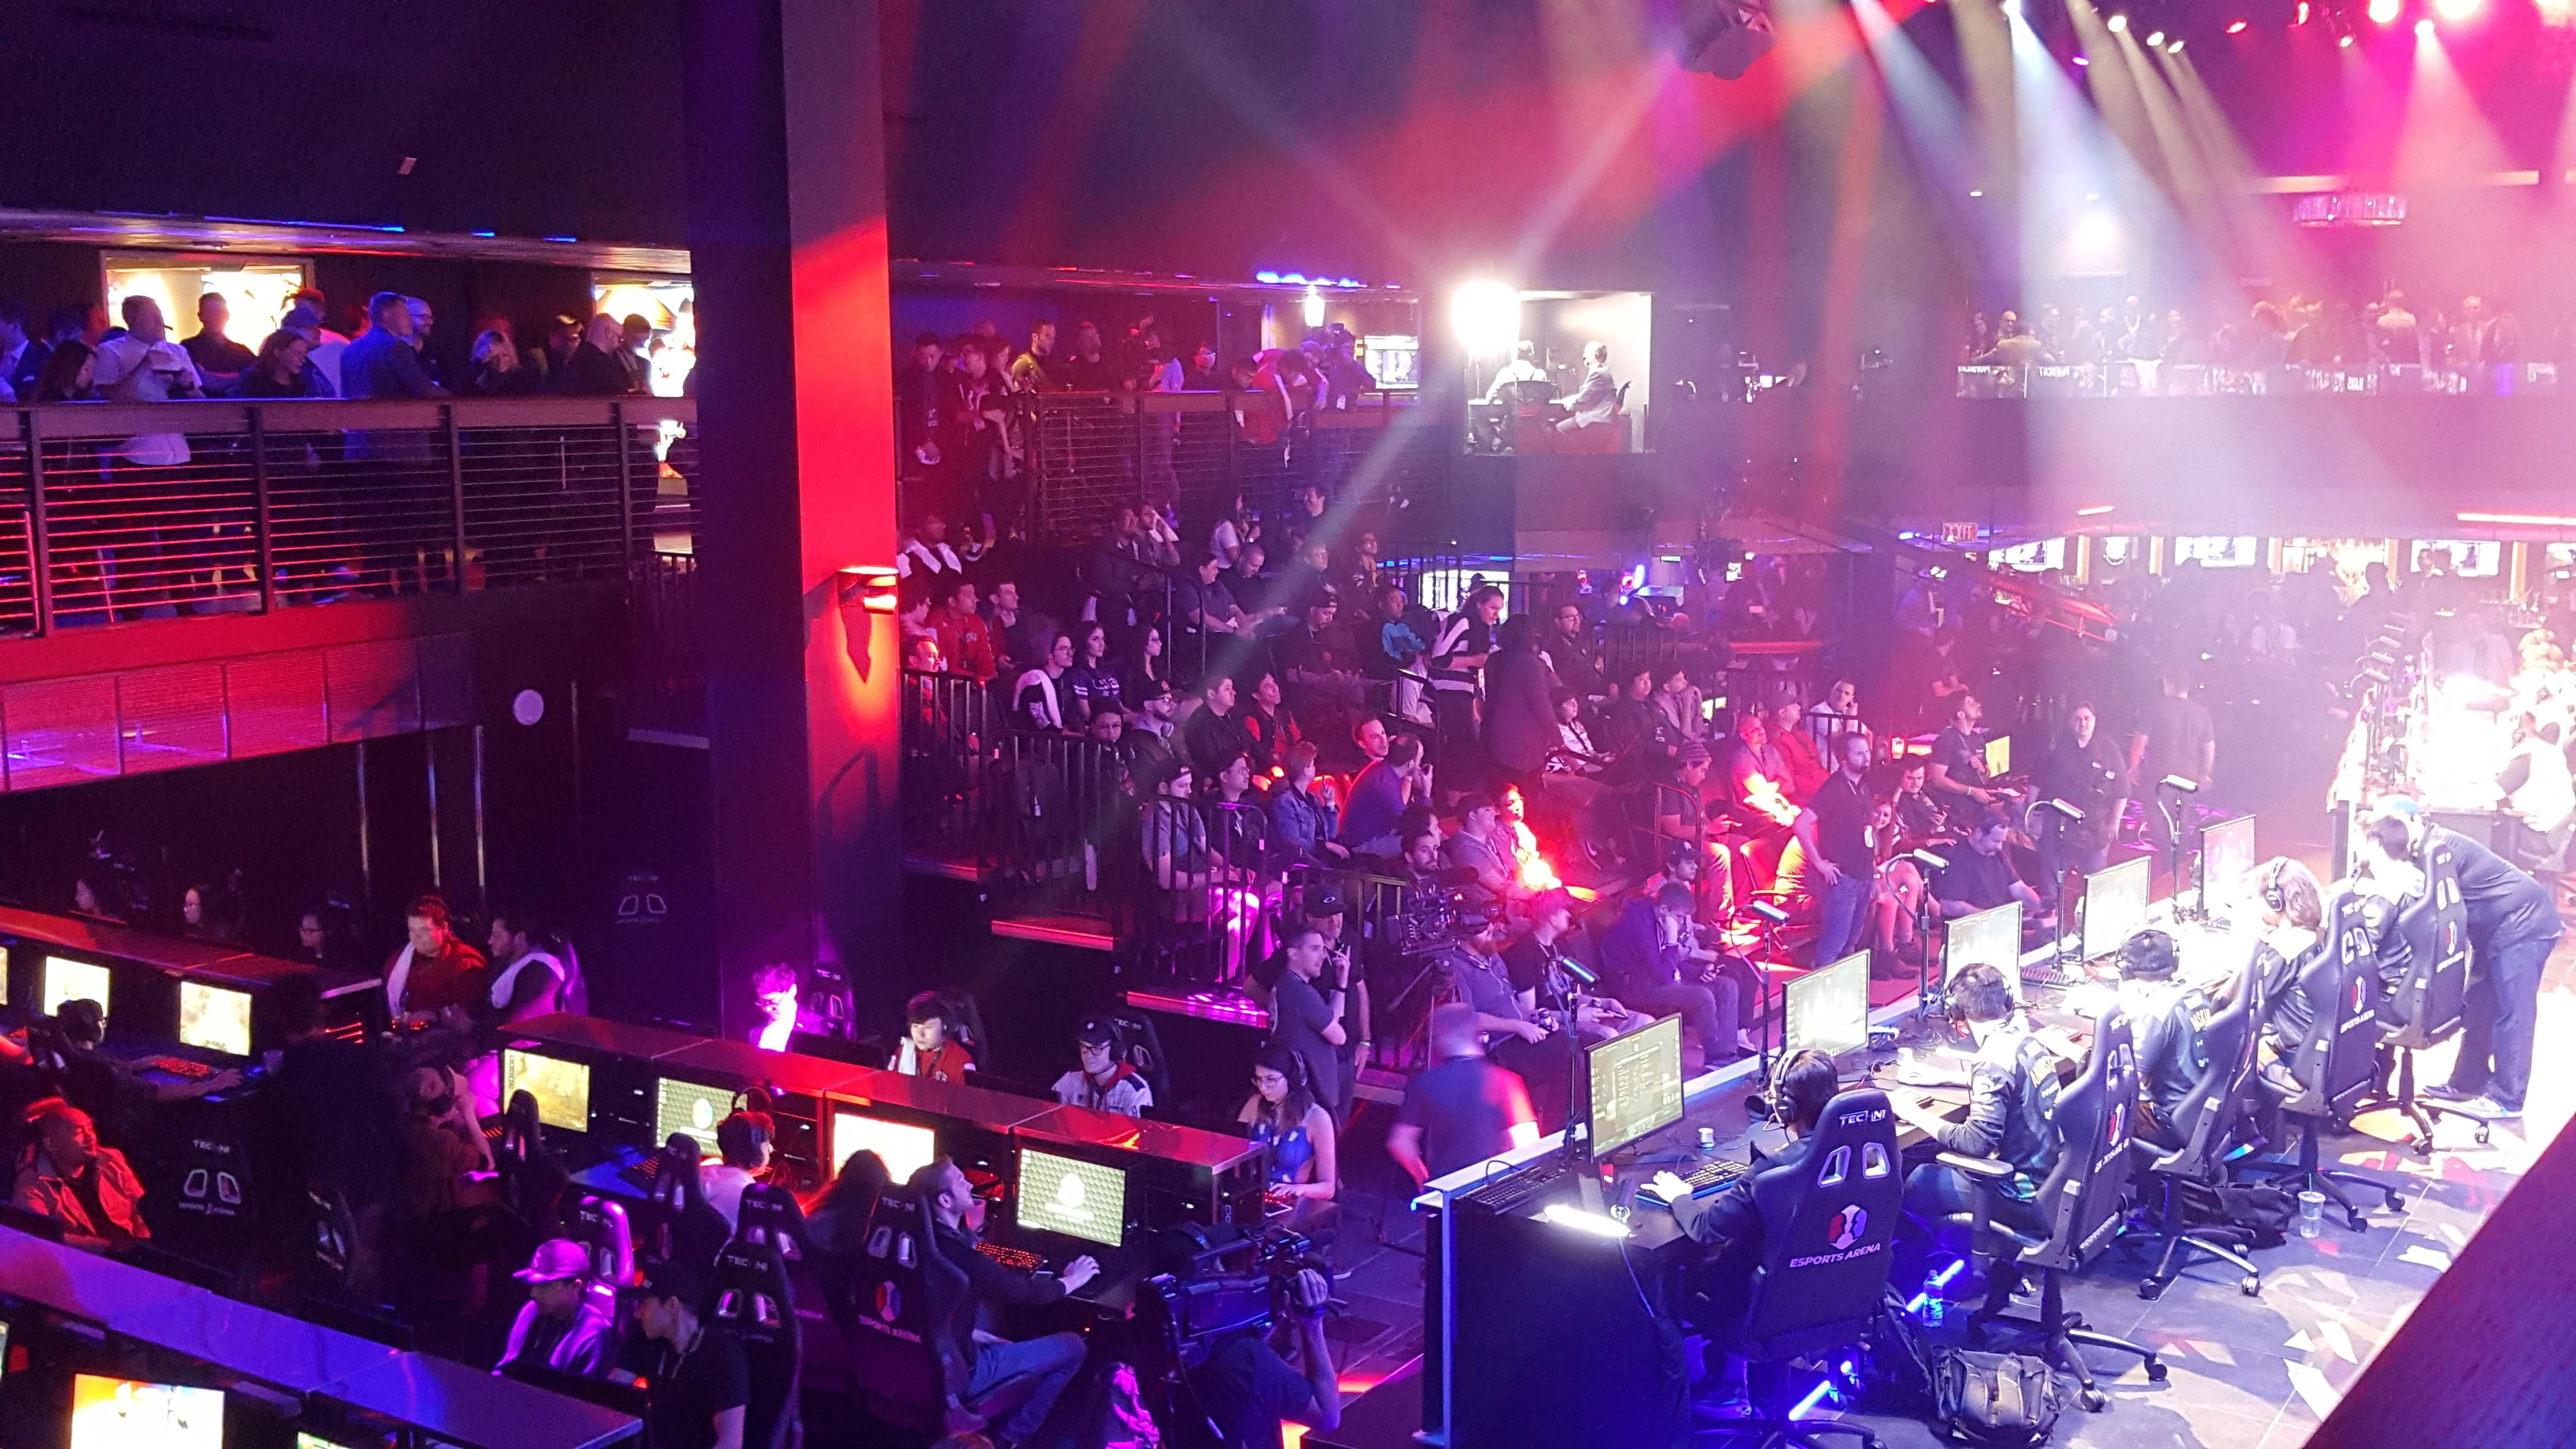 esports-arena-audience-mike-sorrentino-cnet